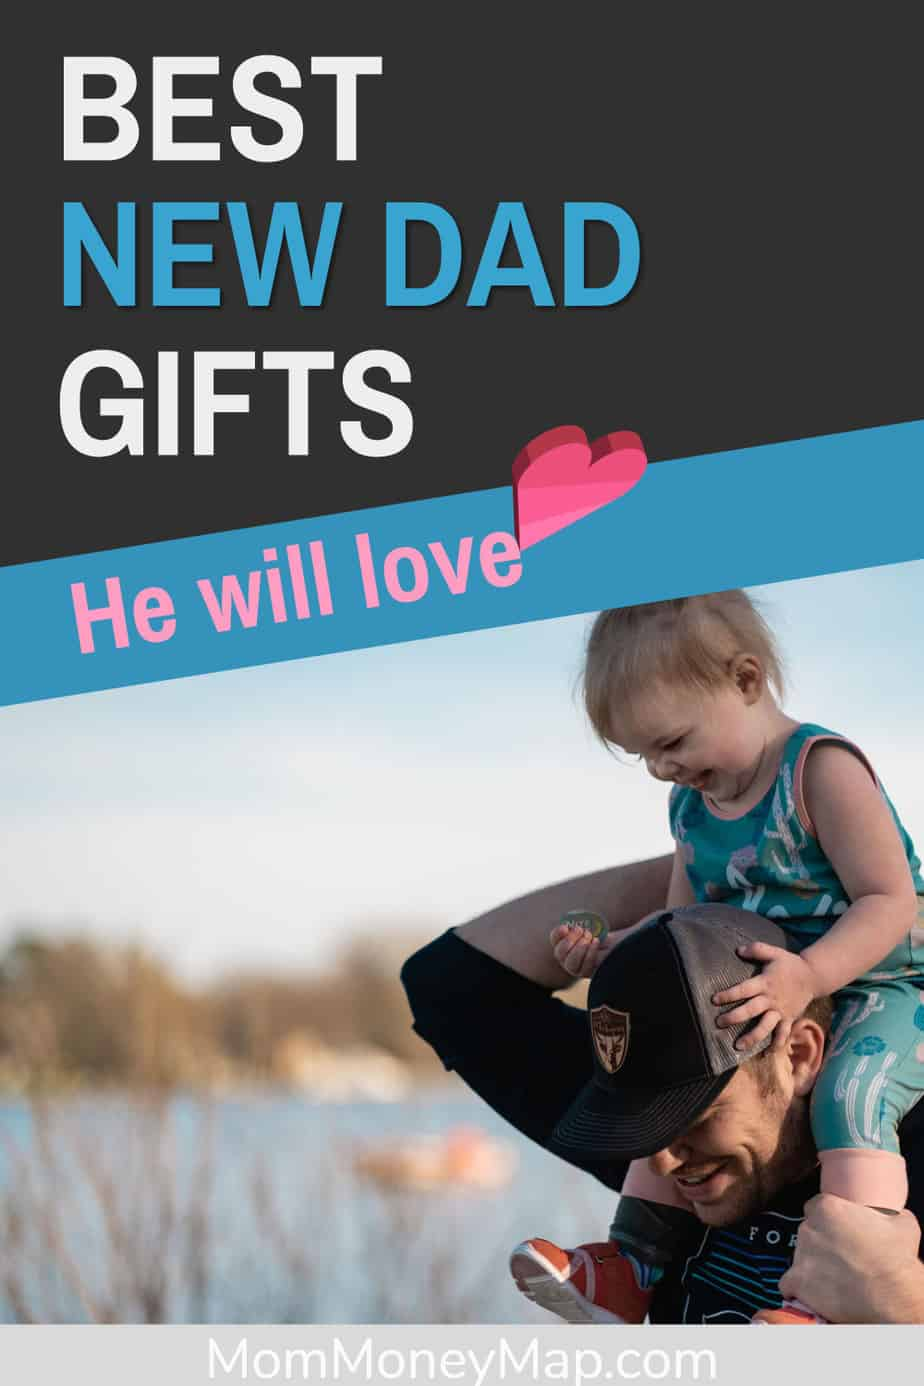 Gifts for Expecting Dads